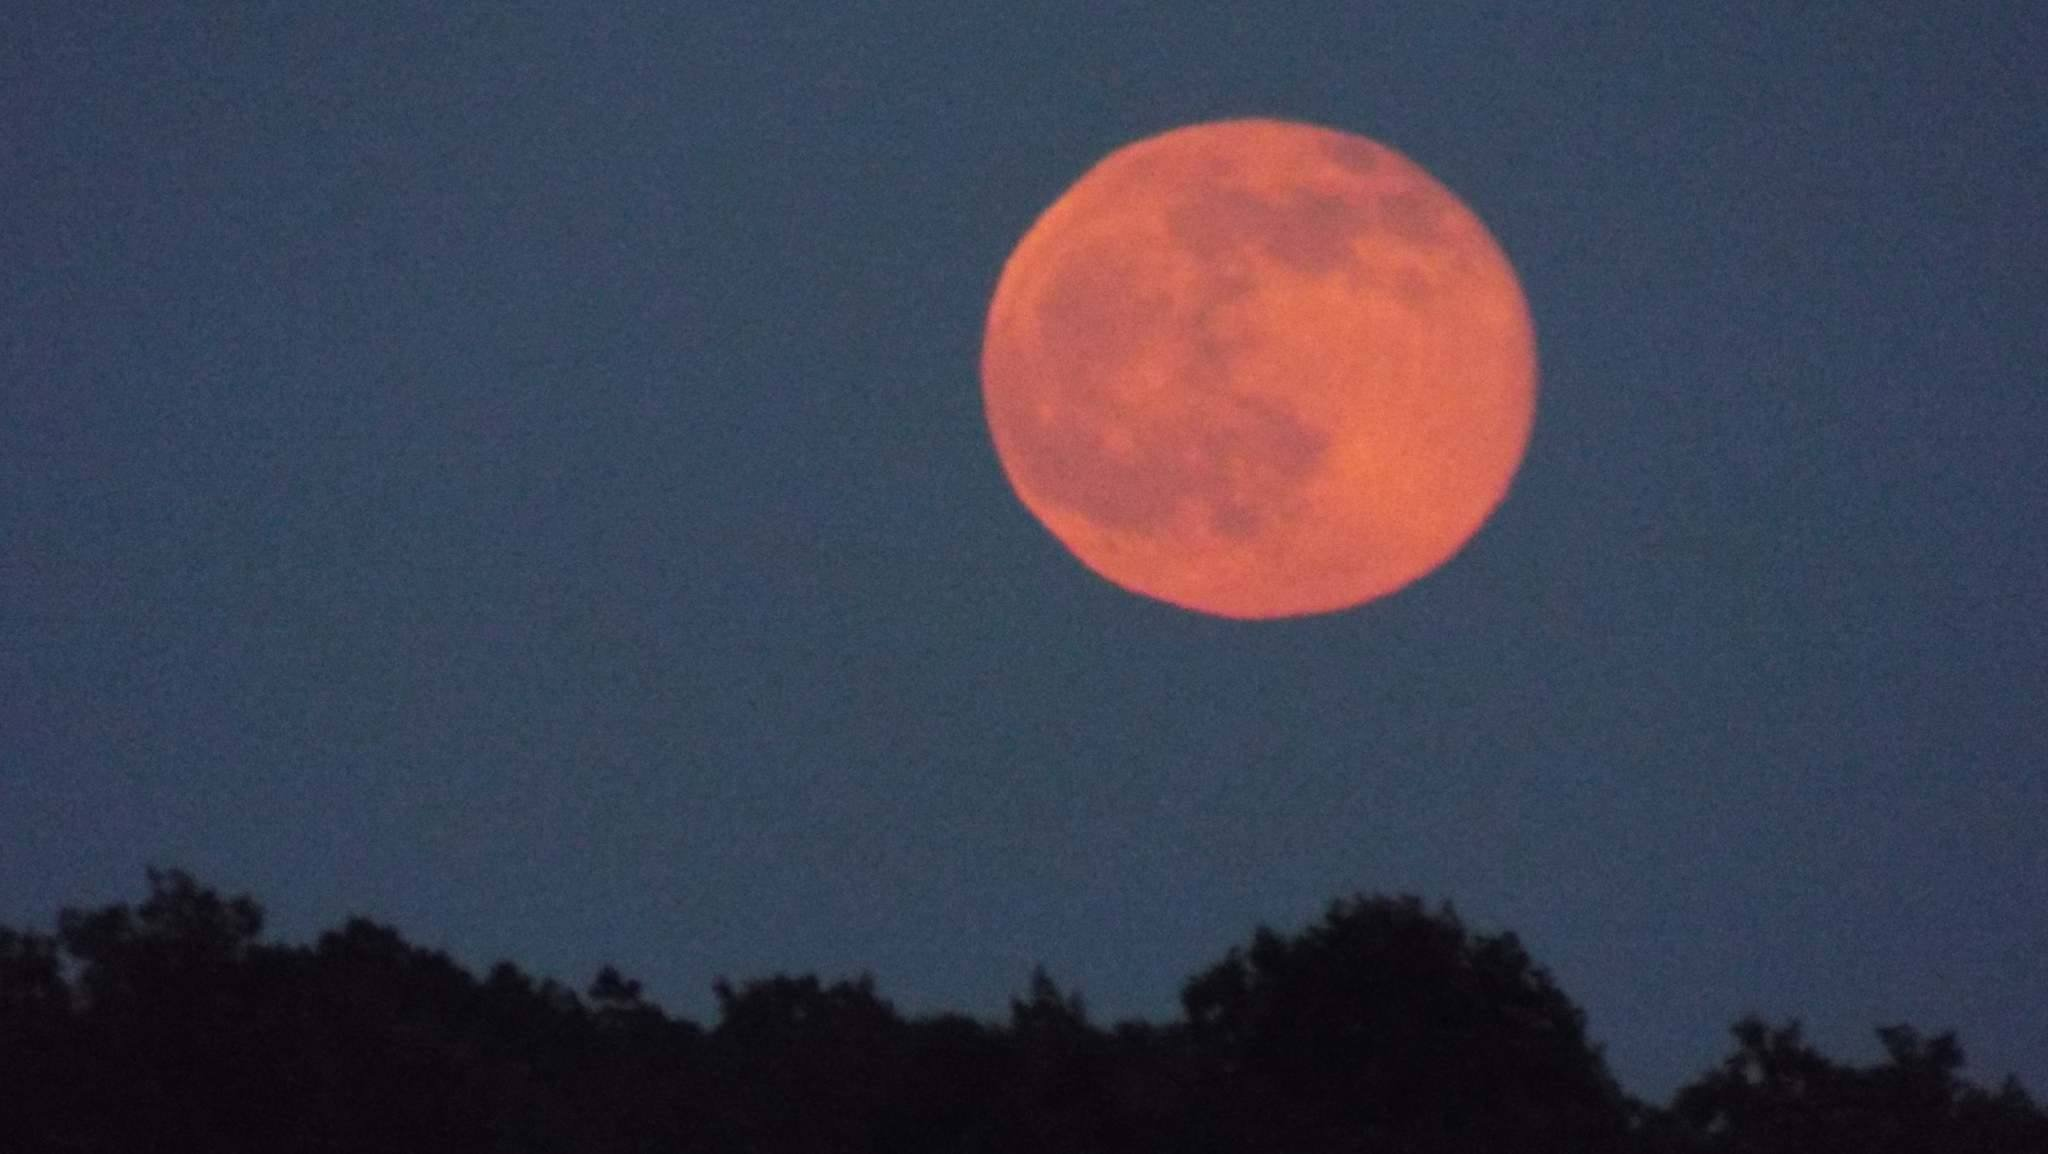 (File image of Strawberry Moon / June 20, 2016)